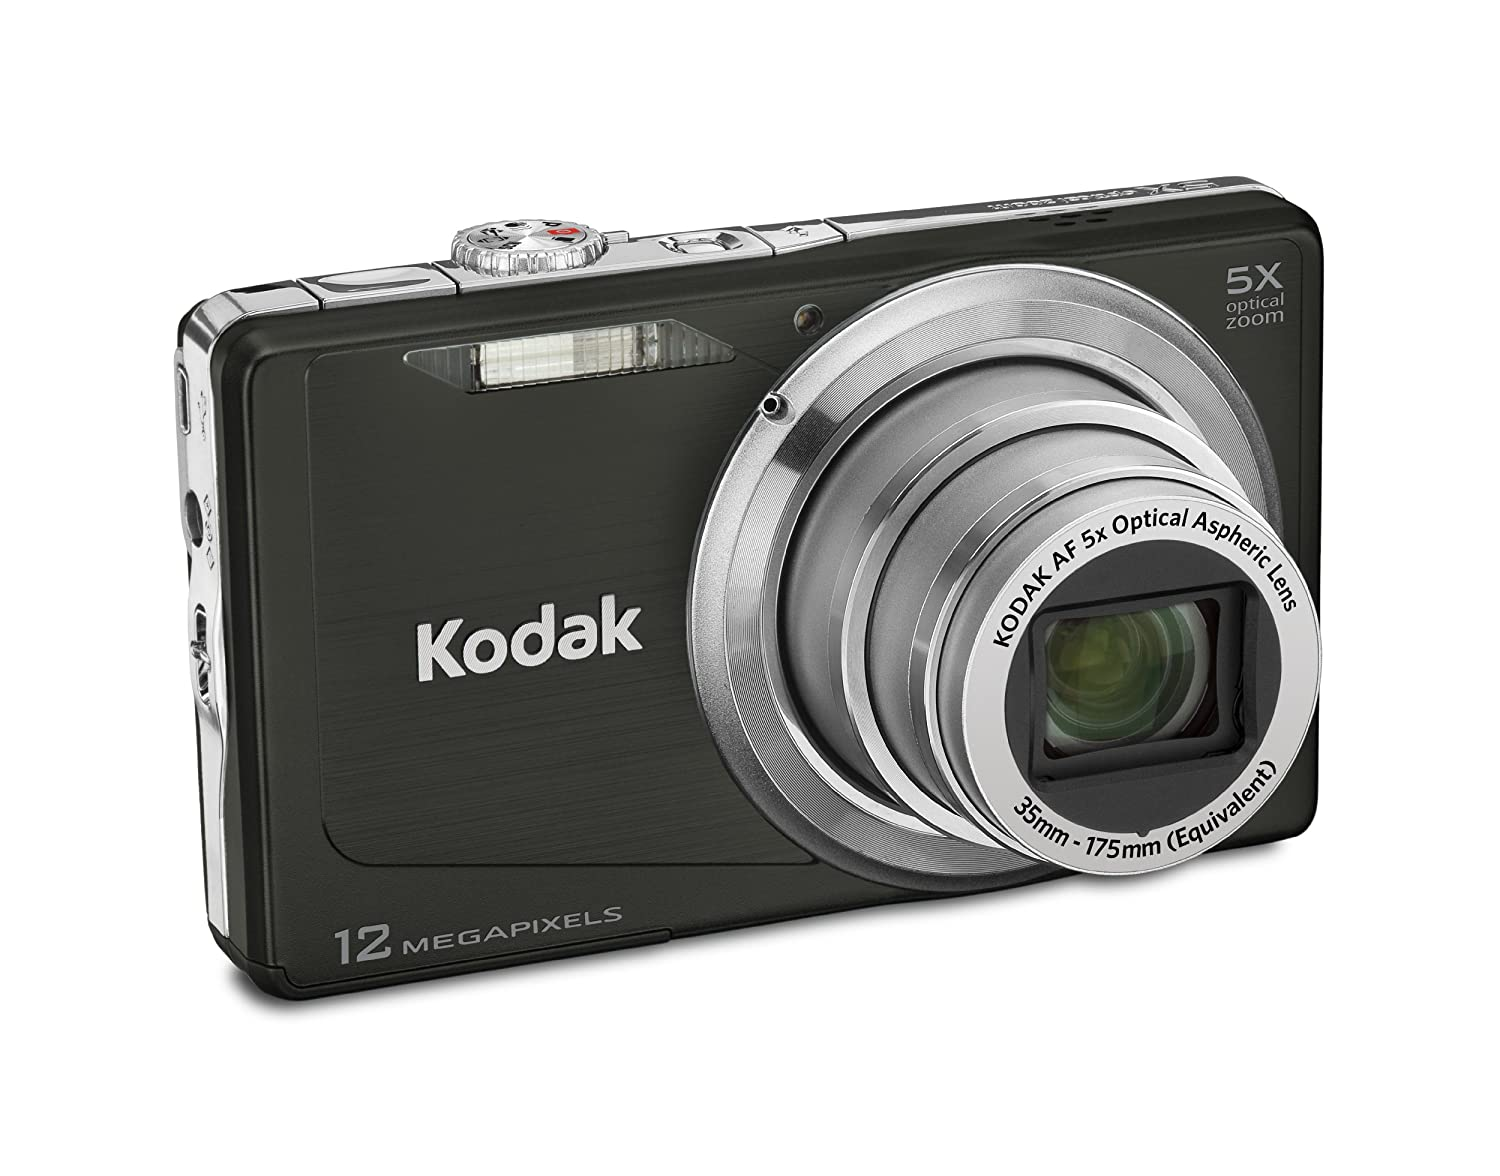 Amazon.com : Kodak Easyshare M381 12.4MP Digital Camera with 5x Optical  Zoom and 3-inch LCD (Red) : Point And Shoot Digital Cameras : Camera & Photo